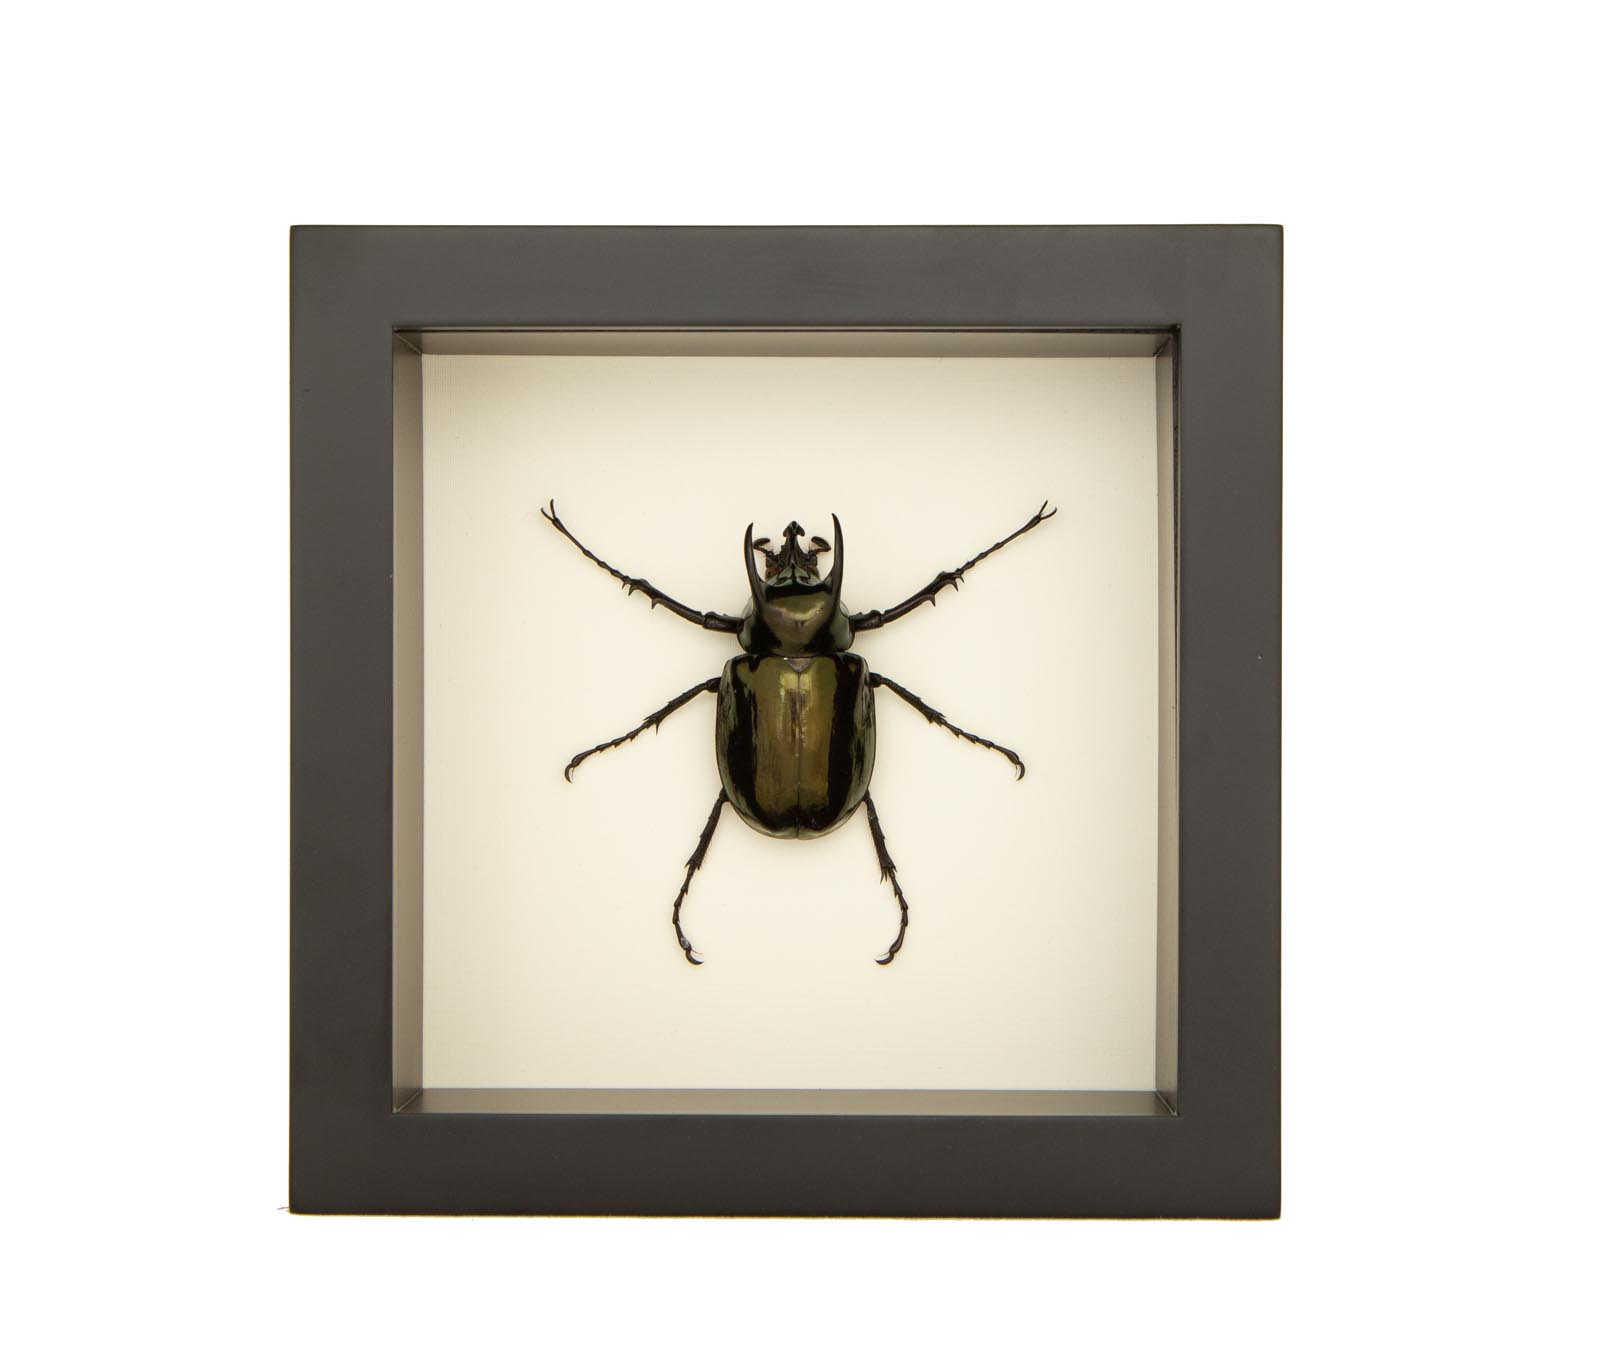 - NEW- Framed Atlas Beetle